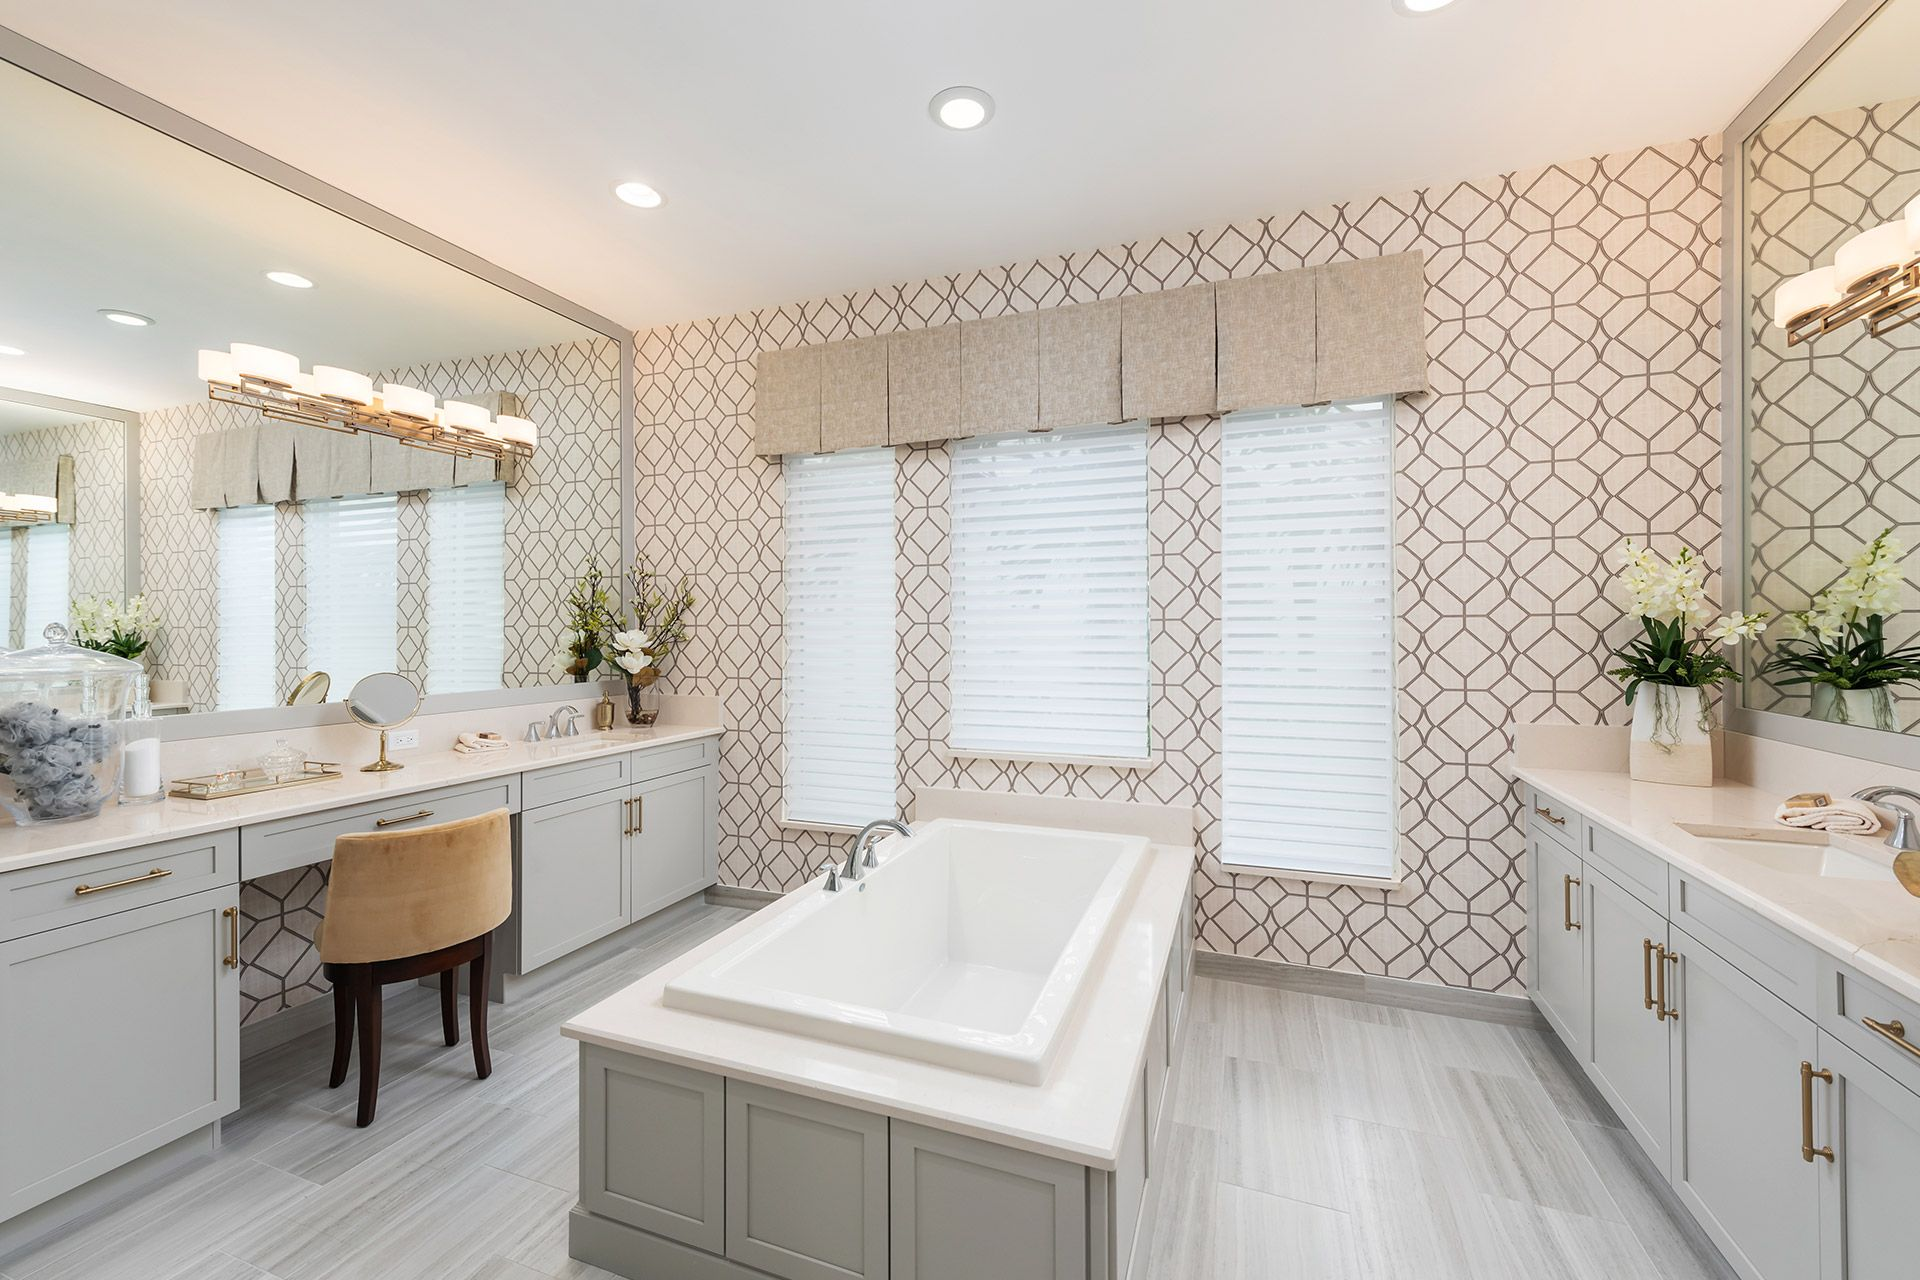 Bathroom featured in the Sunrise By GL Homes in Naples, FL